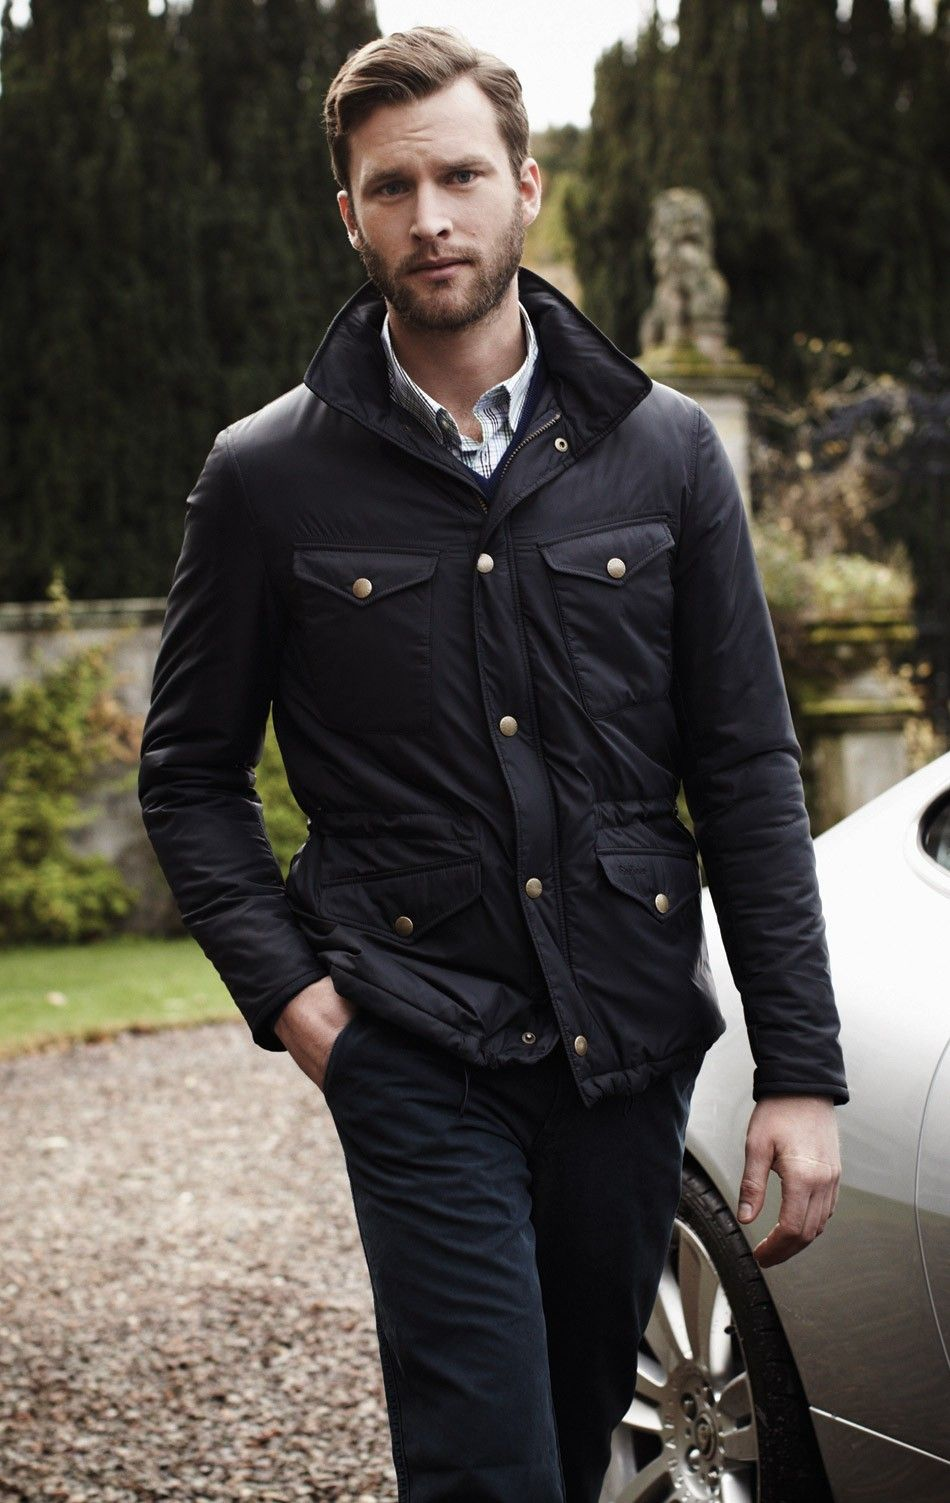 Mens jacket barbour - Barbour New And Old Barbour Mensbarbour Jacketdown